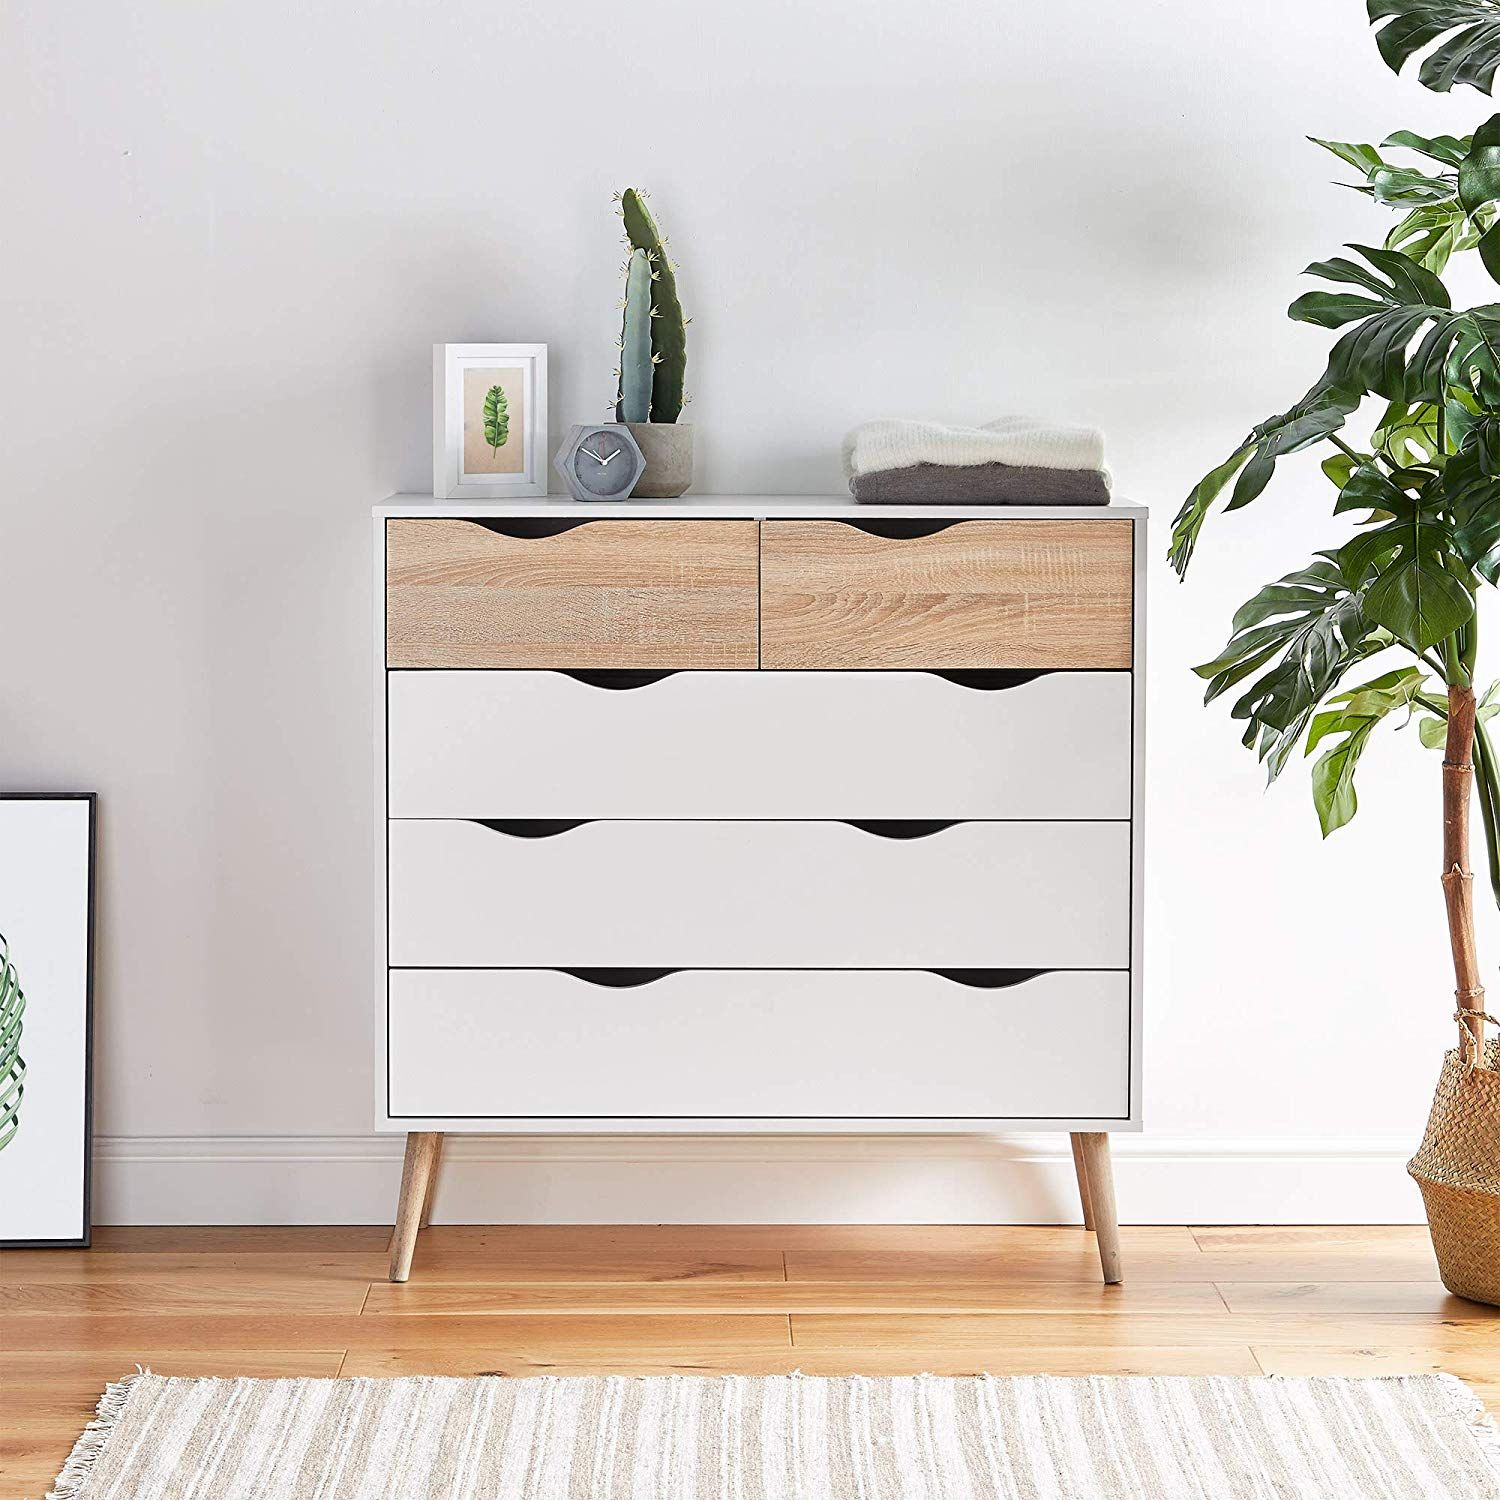 Chest Of Drawers In 2020 Oak Bedroom Furniture White Oak Furniture Scandinavian Chest Of Drawers